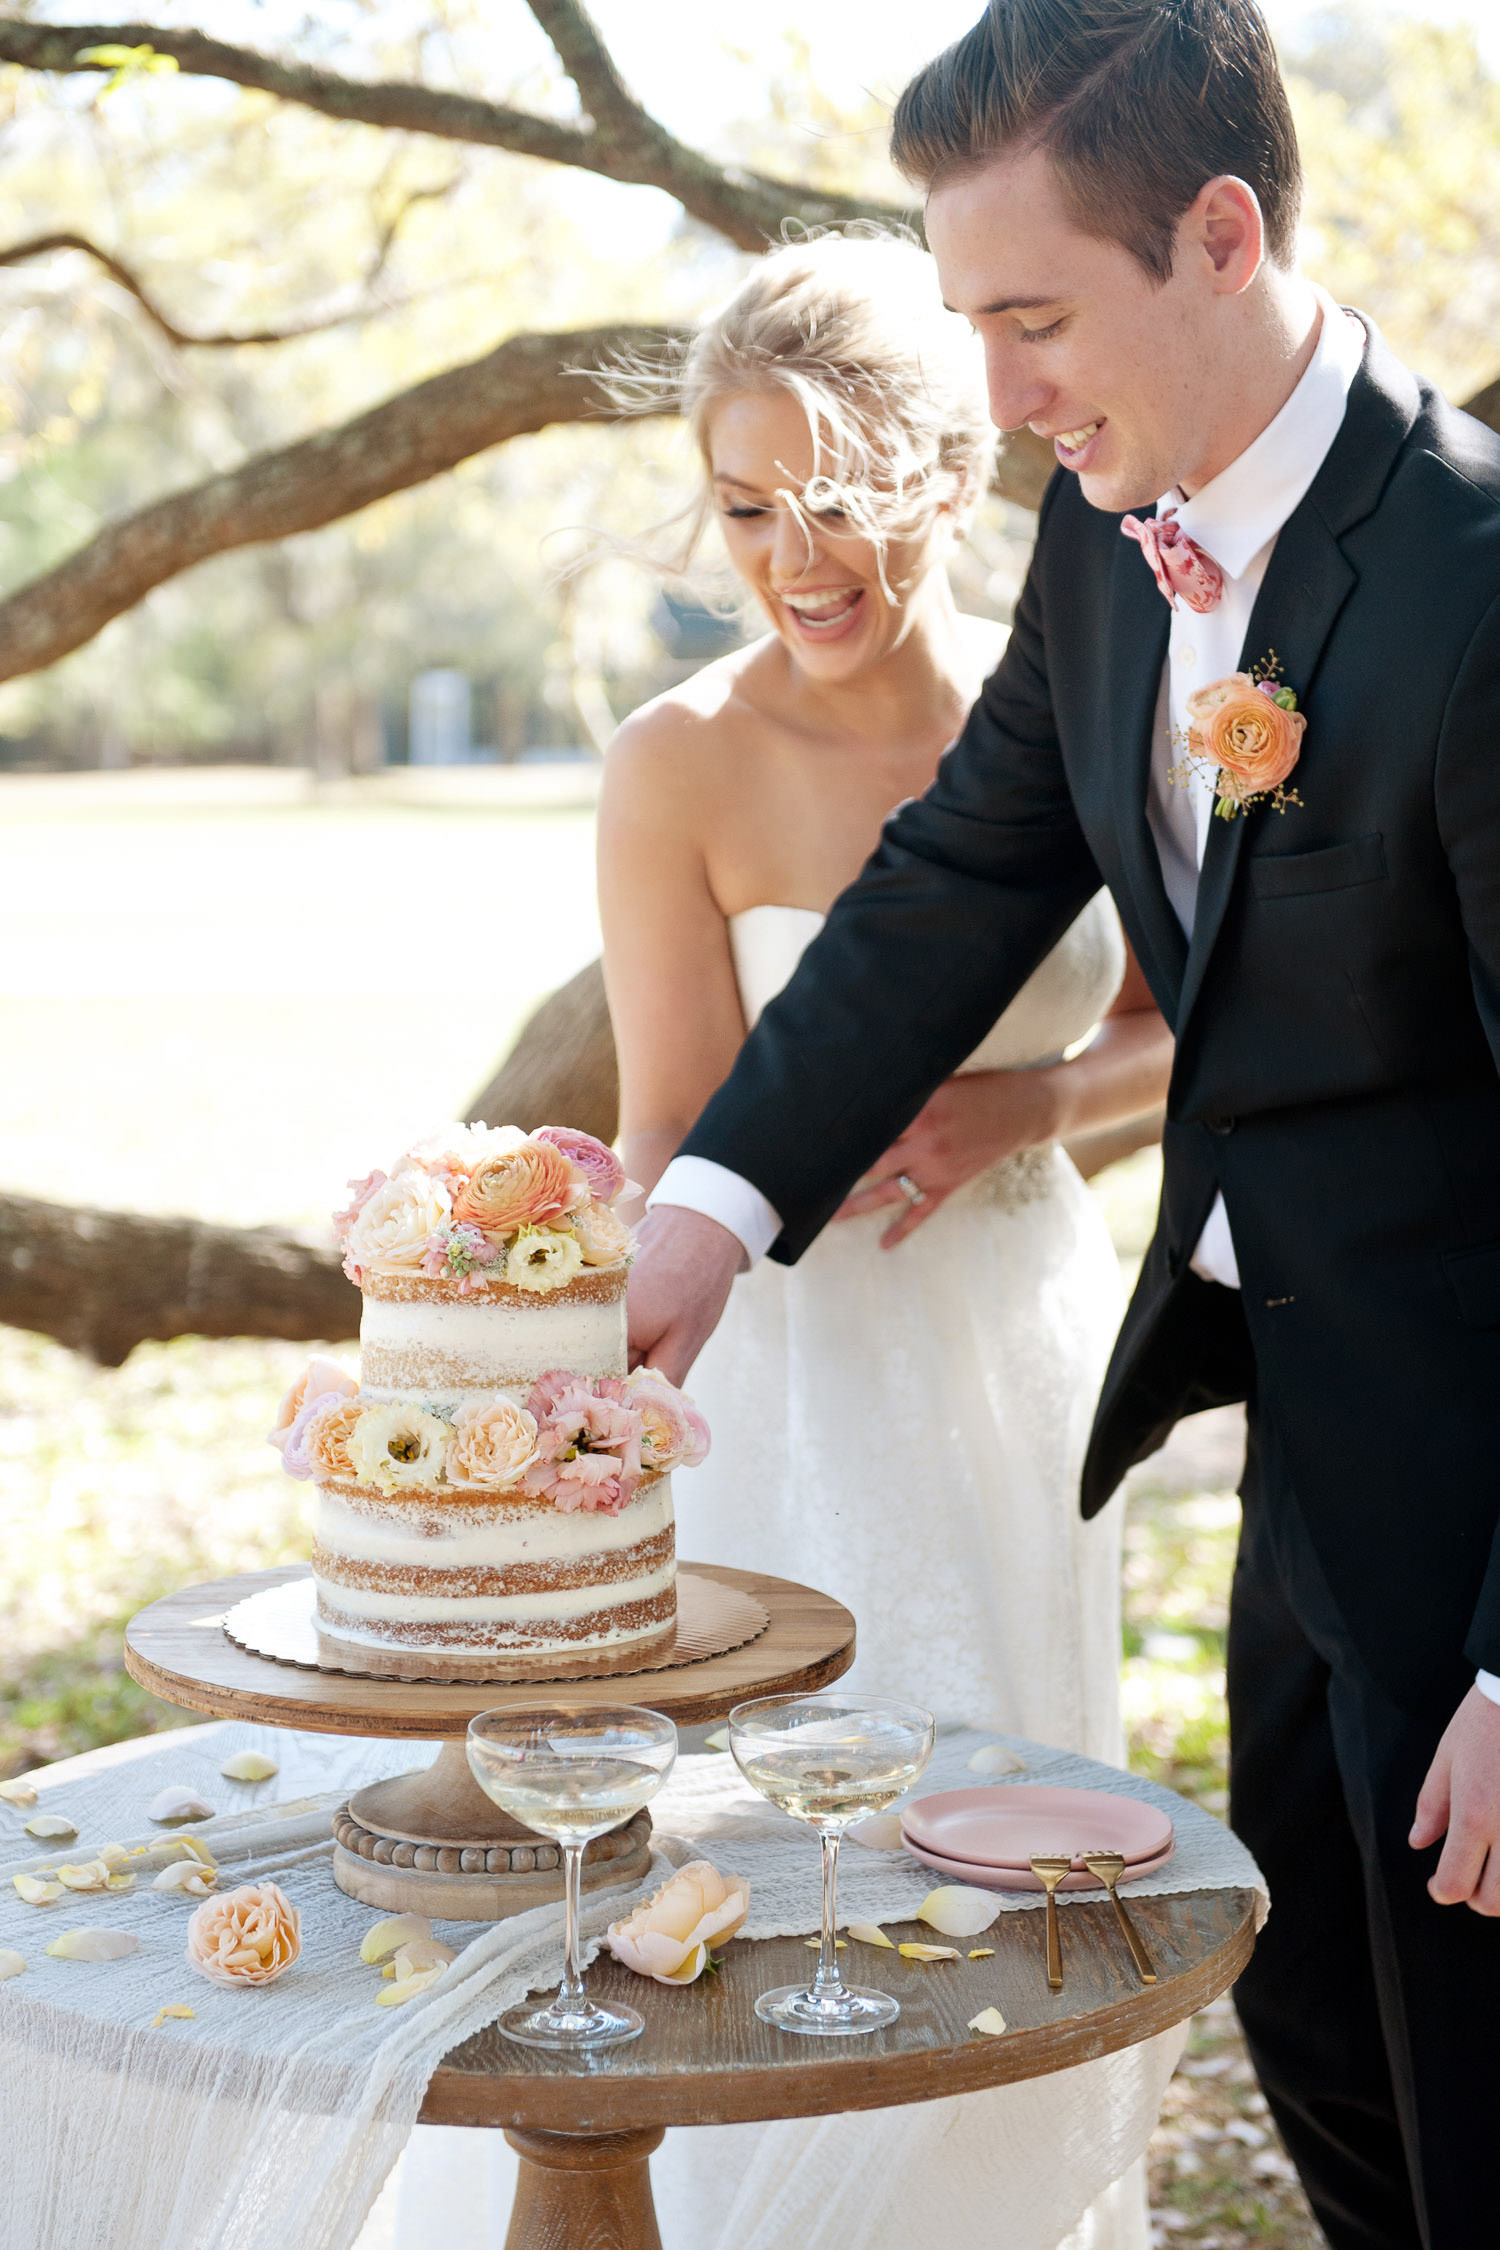 bride and groom cut the cake at their garden wedding captured by Tara Whittaker Photography